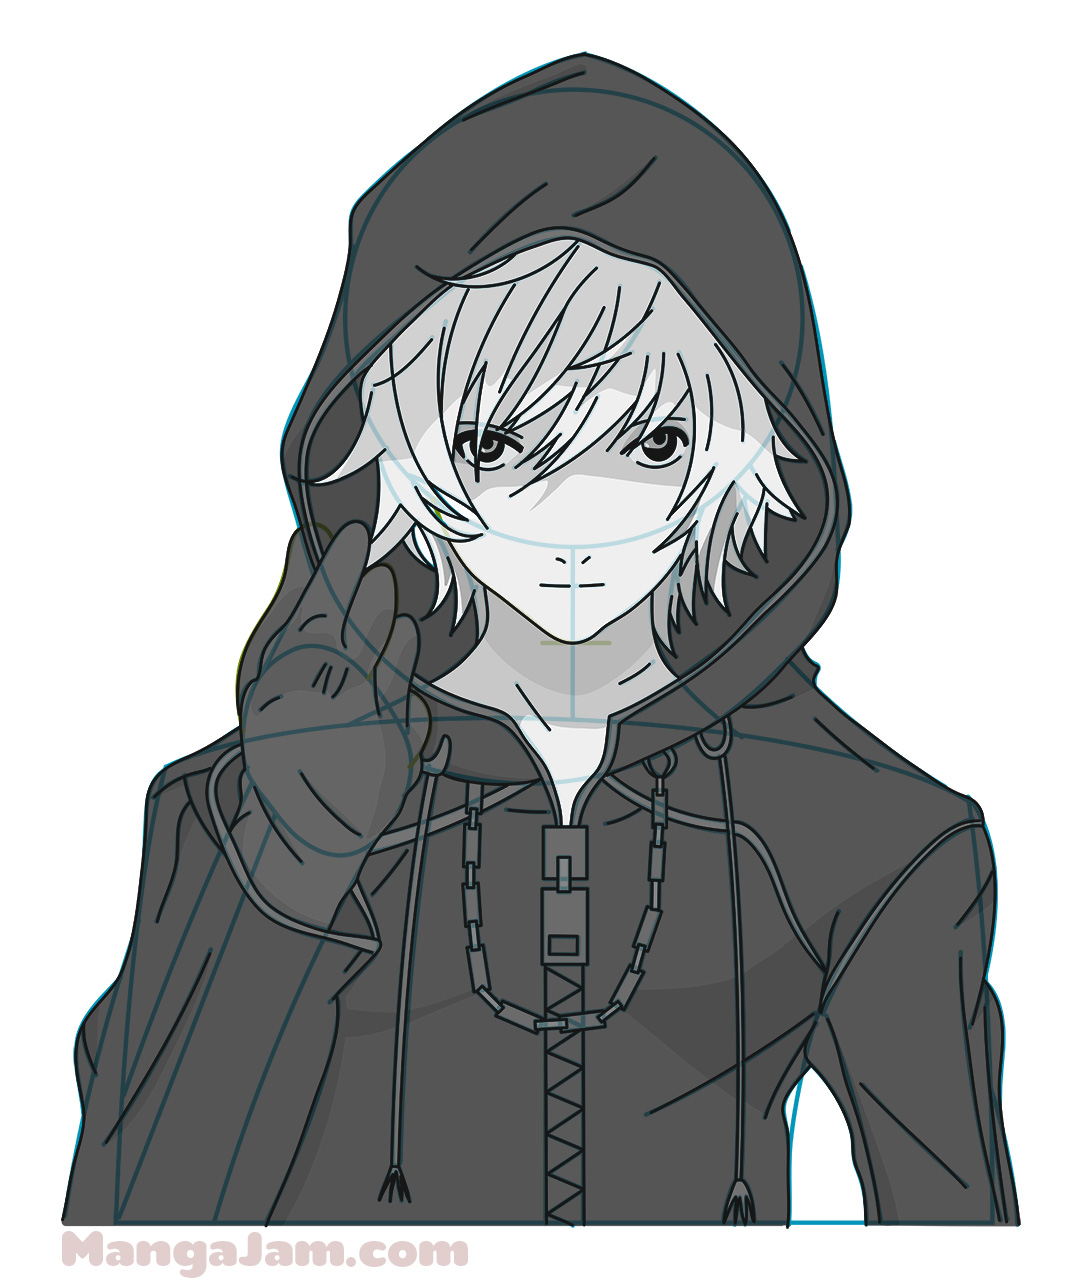 How to Draw Hooded Roxas from Kingdom Hearts - Mangajam.com